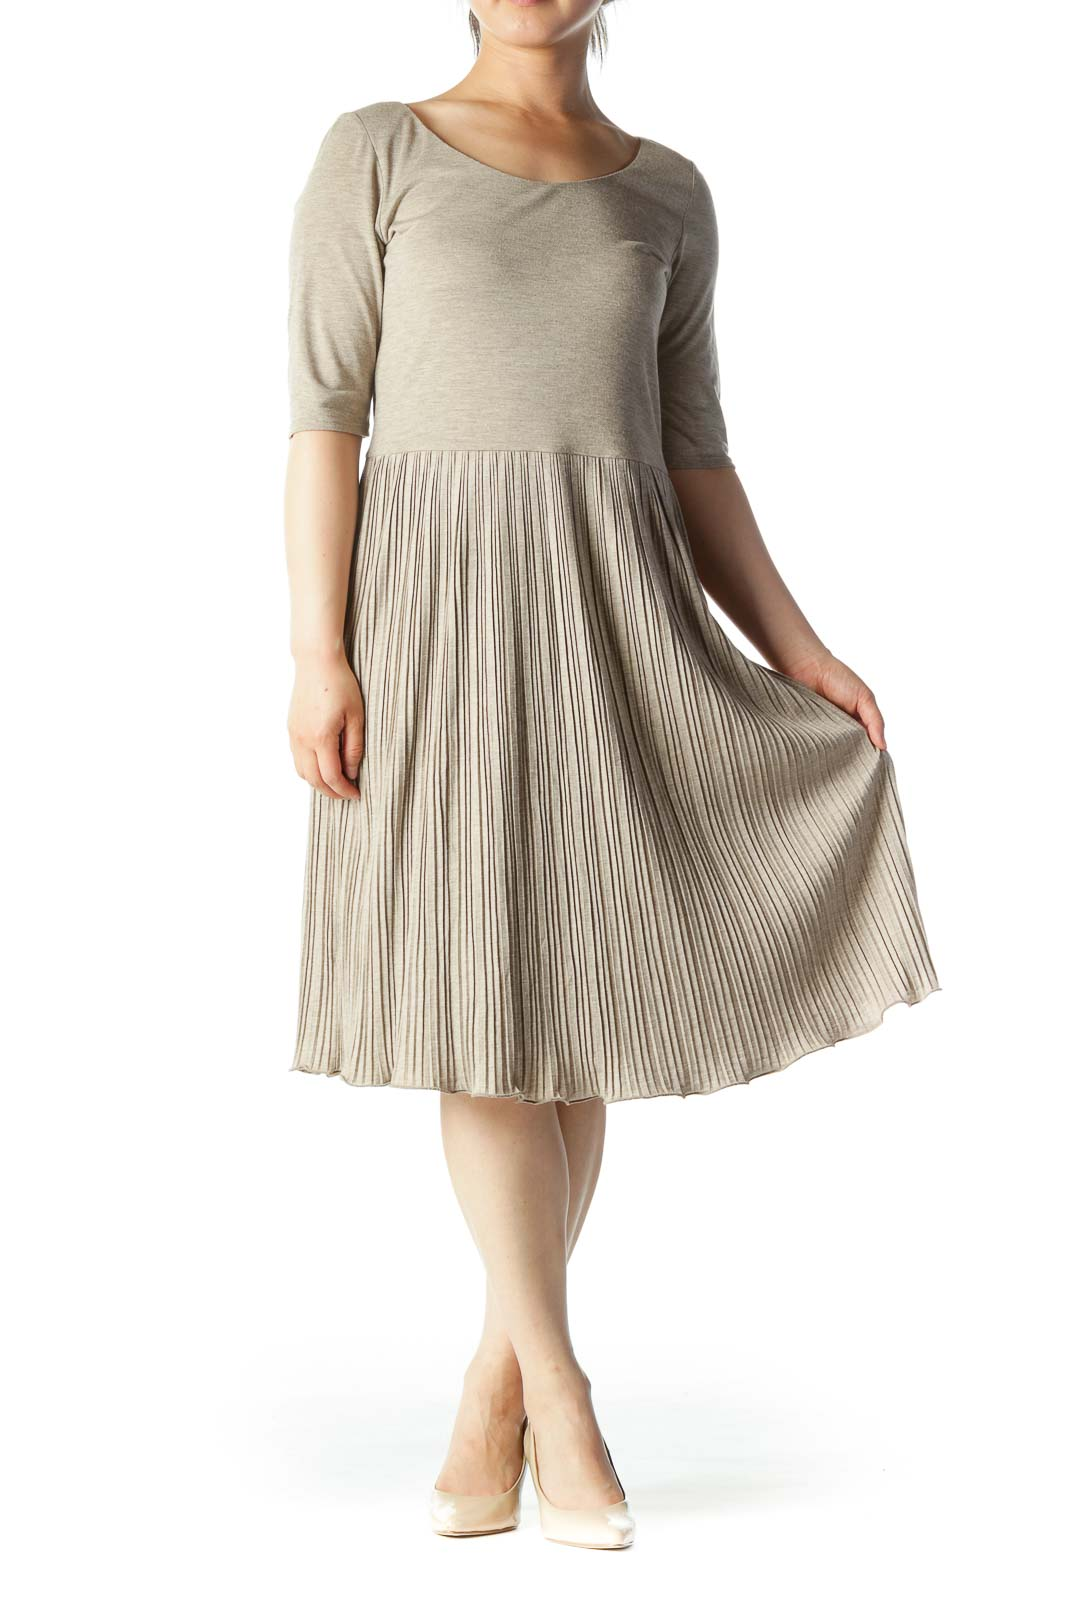 Beige Pleated Short-Sleeve Scoop-Neck T-Shirt Dress